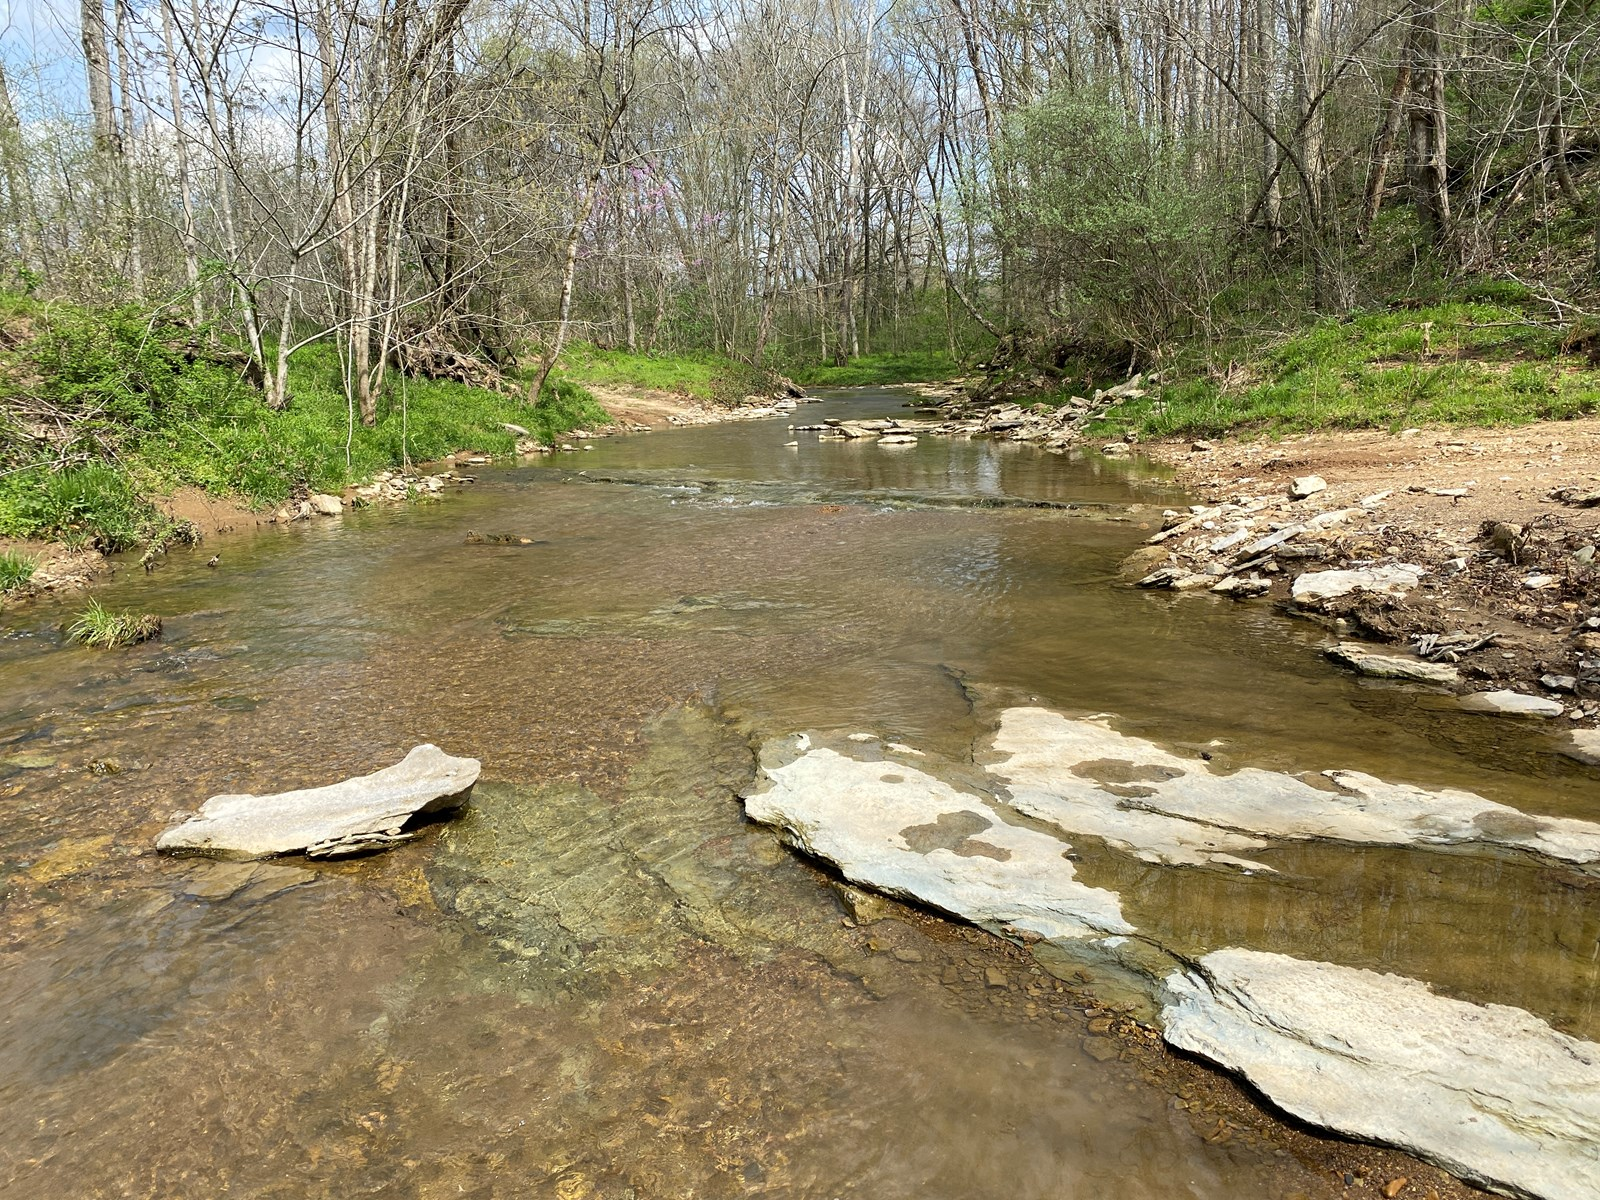 111.65 acres undeveloped land for sale near Summer Shade Ky.